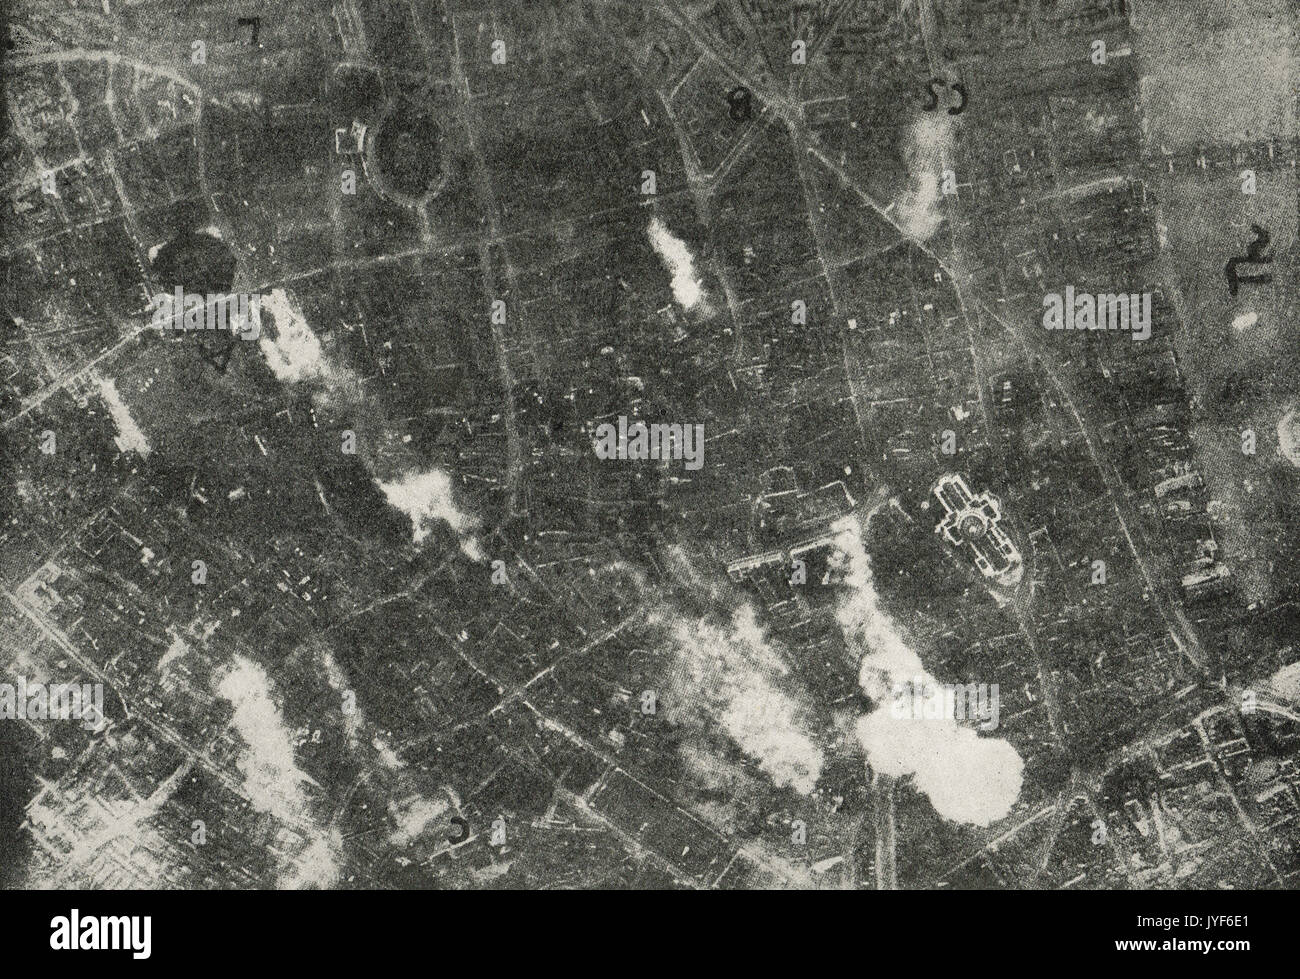 Aerial view of London bombing on 7 July 1917 taken from a German aeroplane - Stock Image